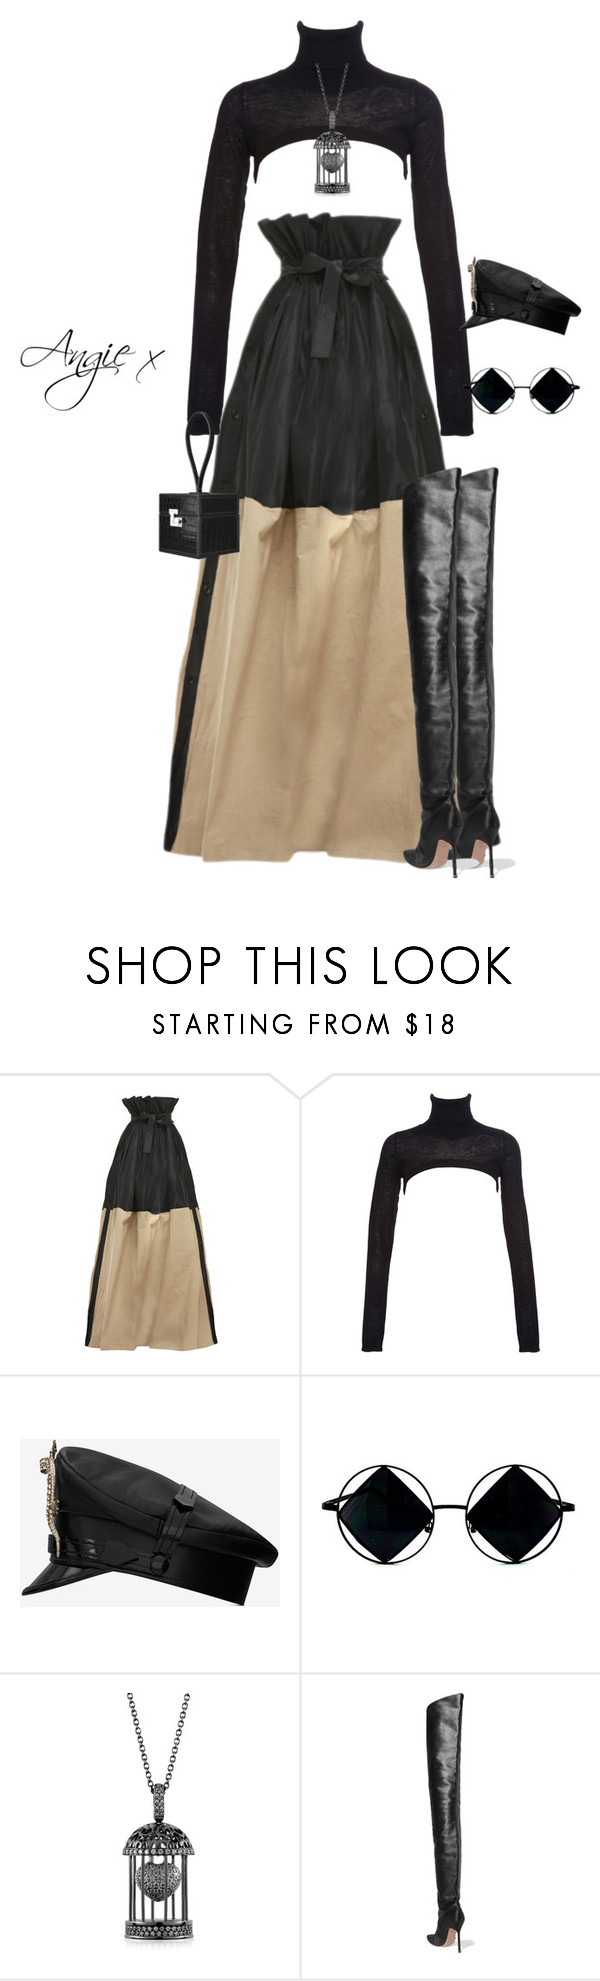 """Untitled #692"" by stylzbyang ❤ liked on Polyvore featuring Tome, Preen, Yves Saint Laurent, Azhar and Manolo Blahnik"